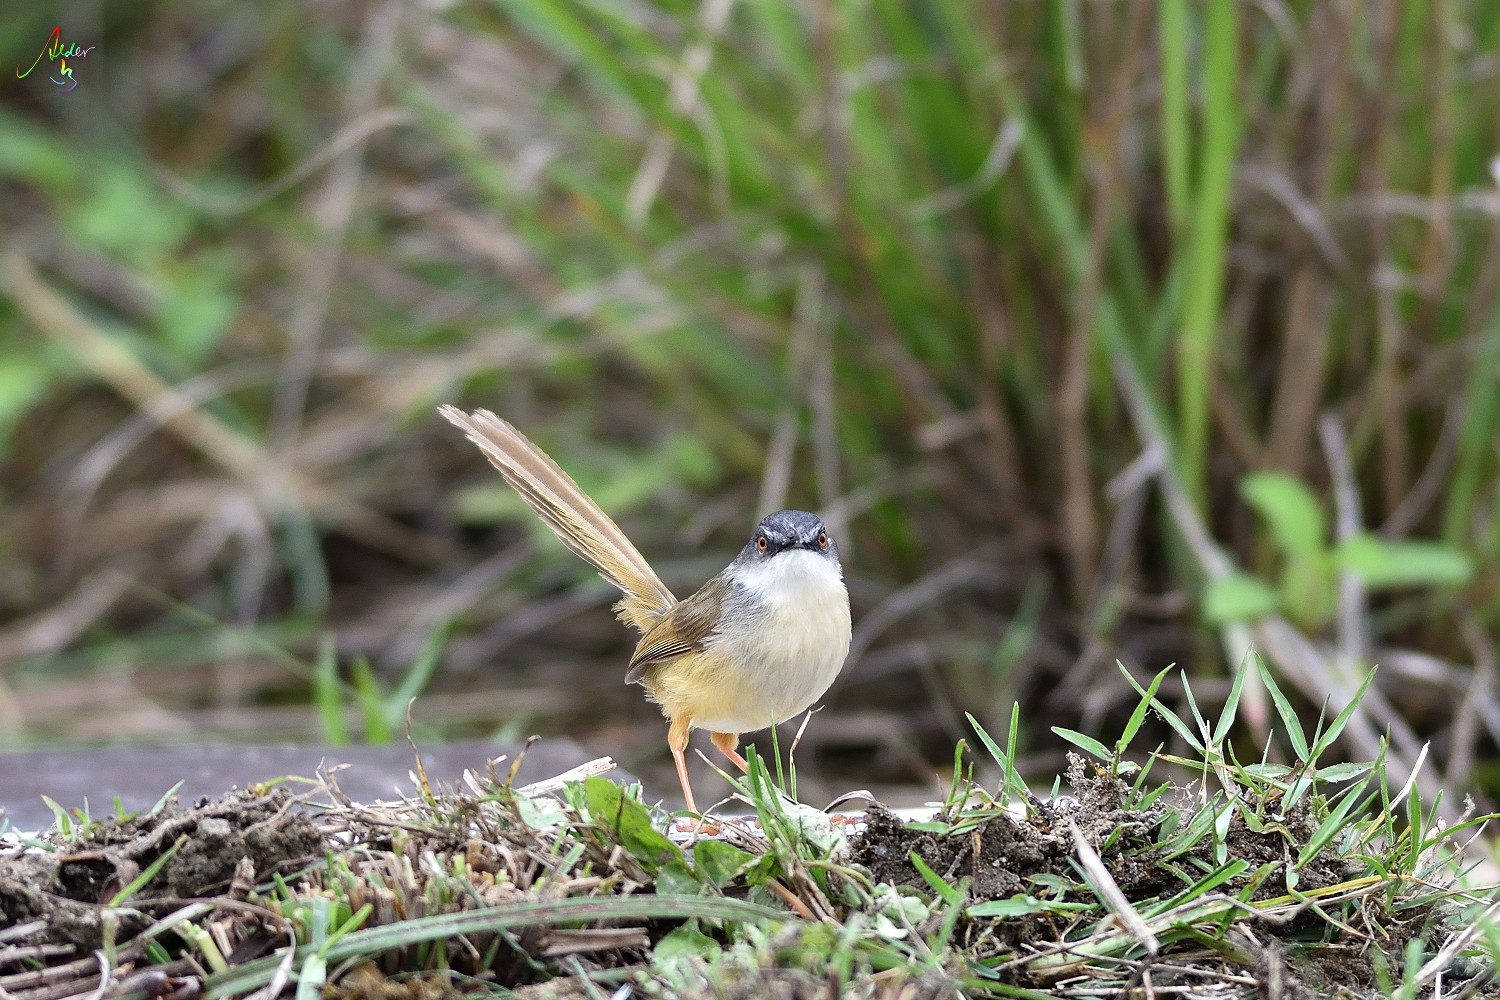 Yellow-bellied_Prinia_3256